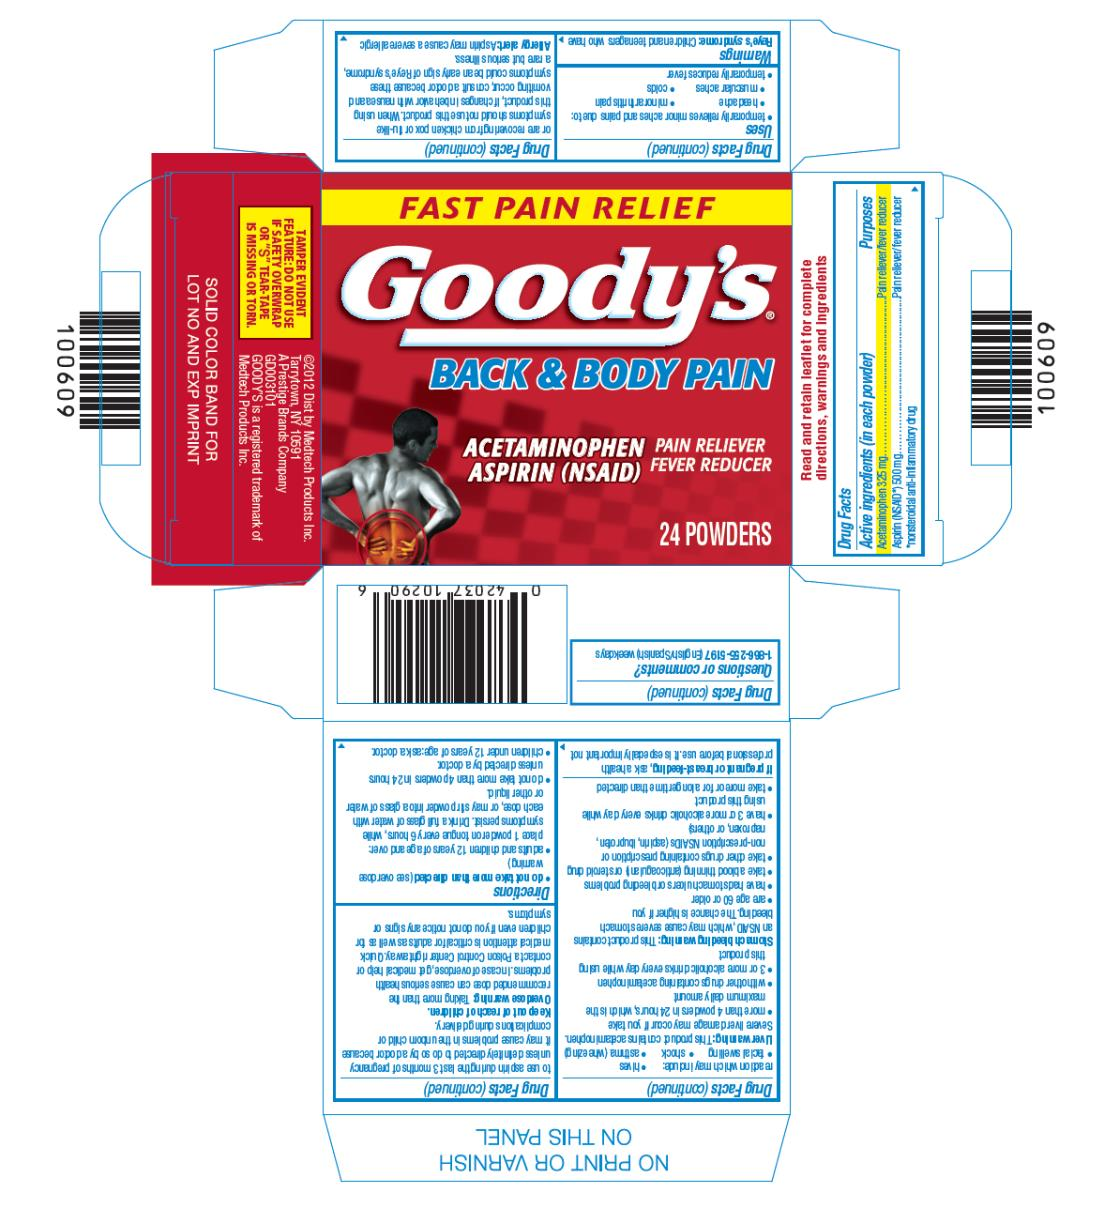 Goodys Back And Body Pain (Acetaminophen And Asprin) Powder [Medtech Products Inc.]